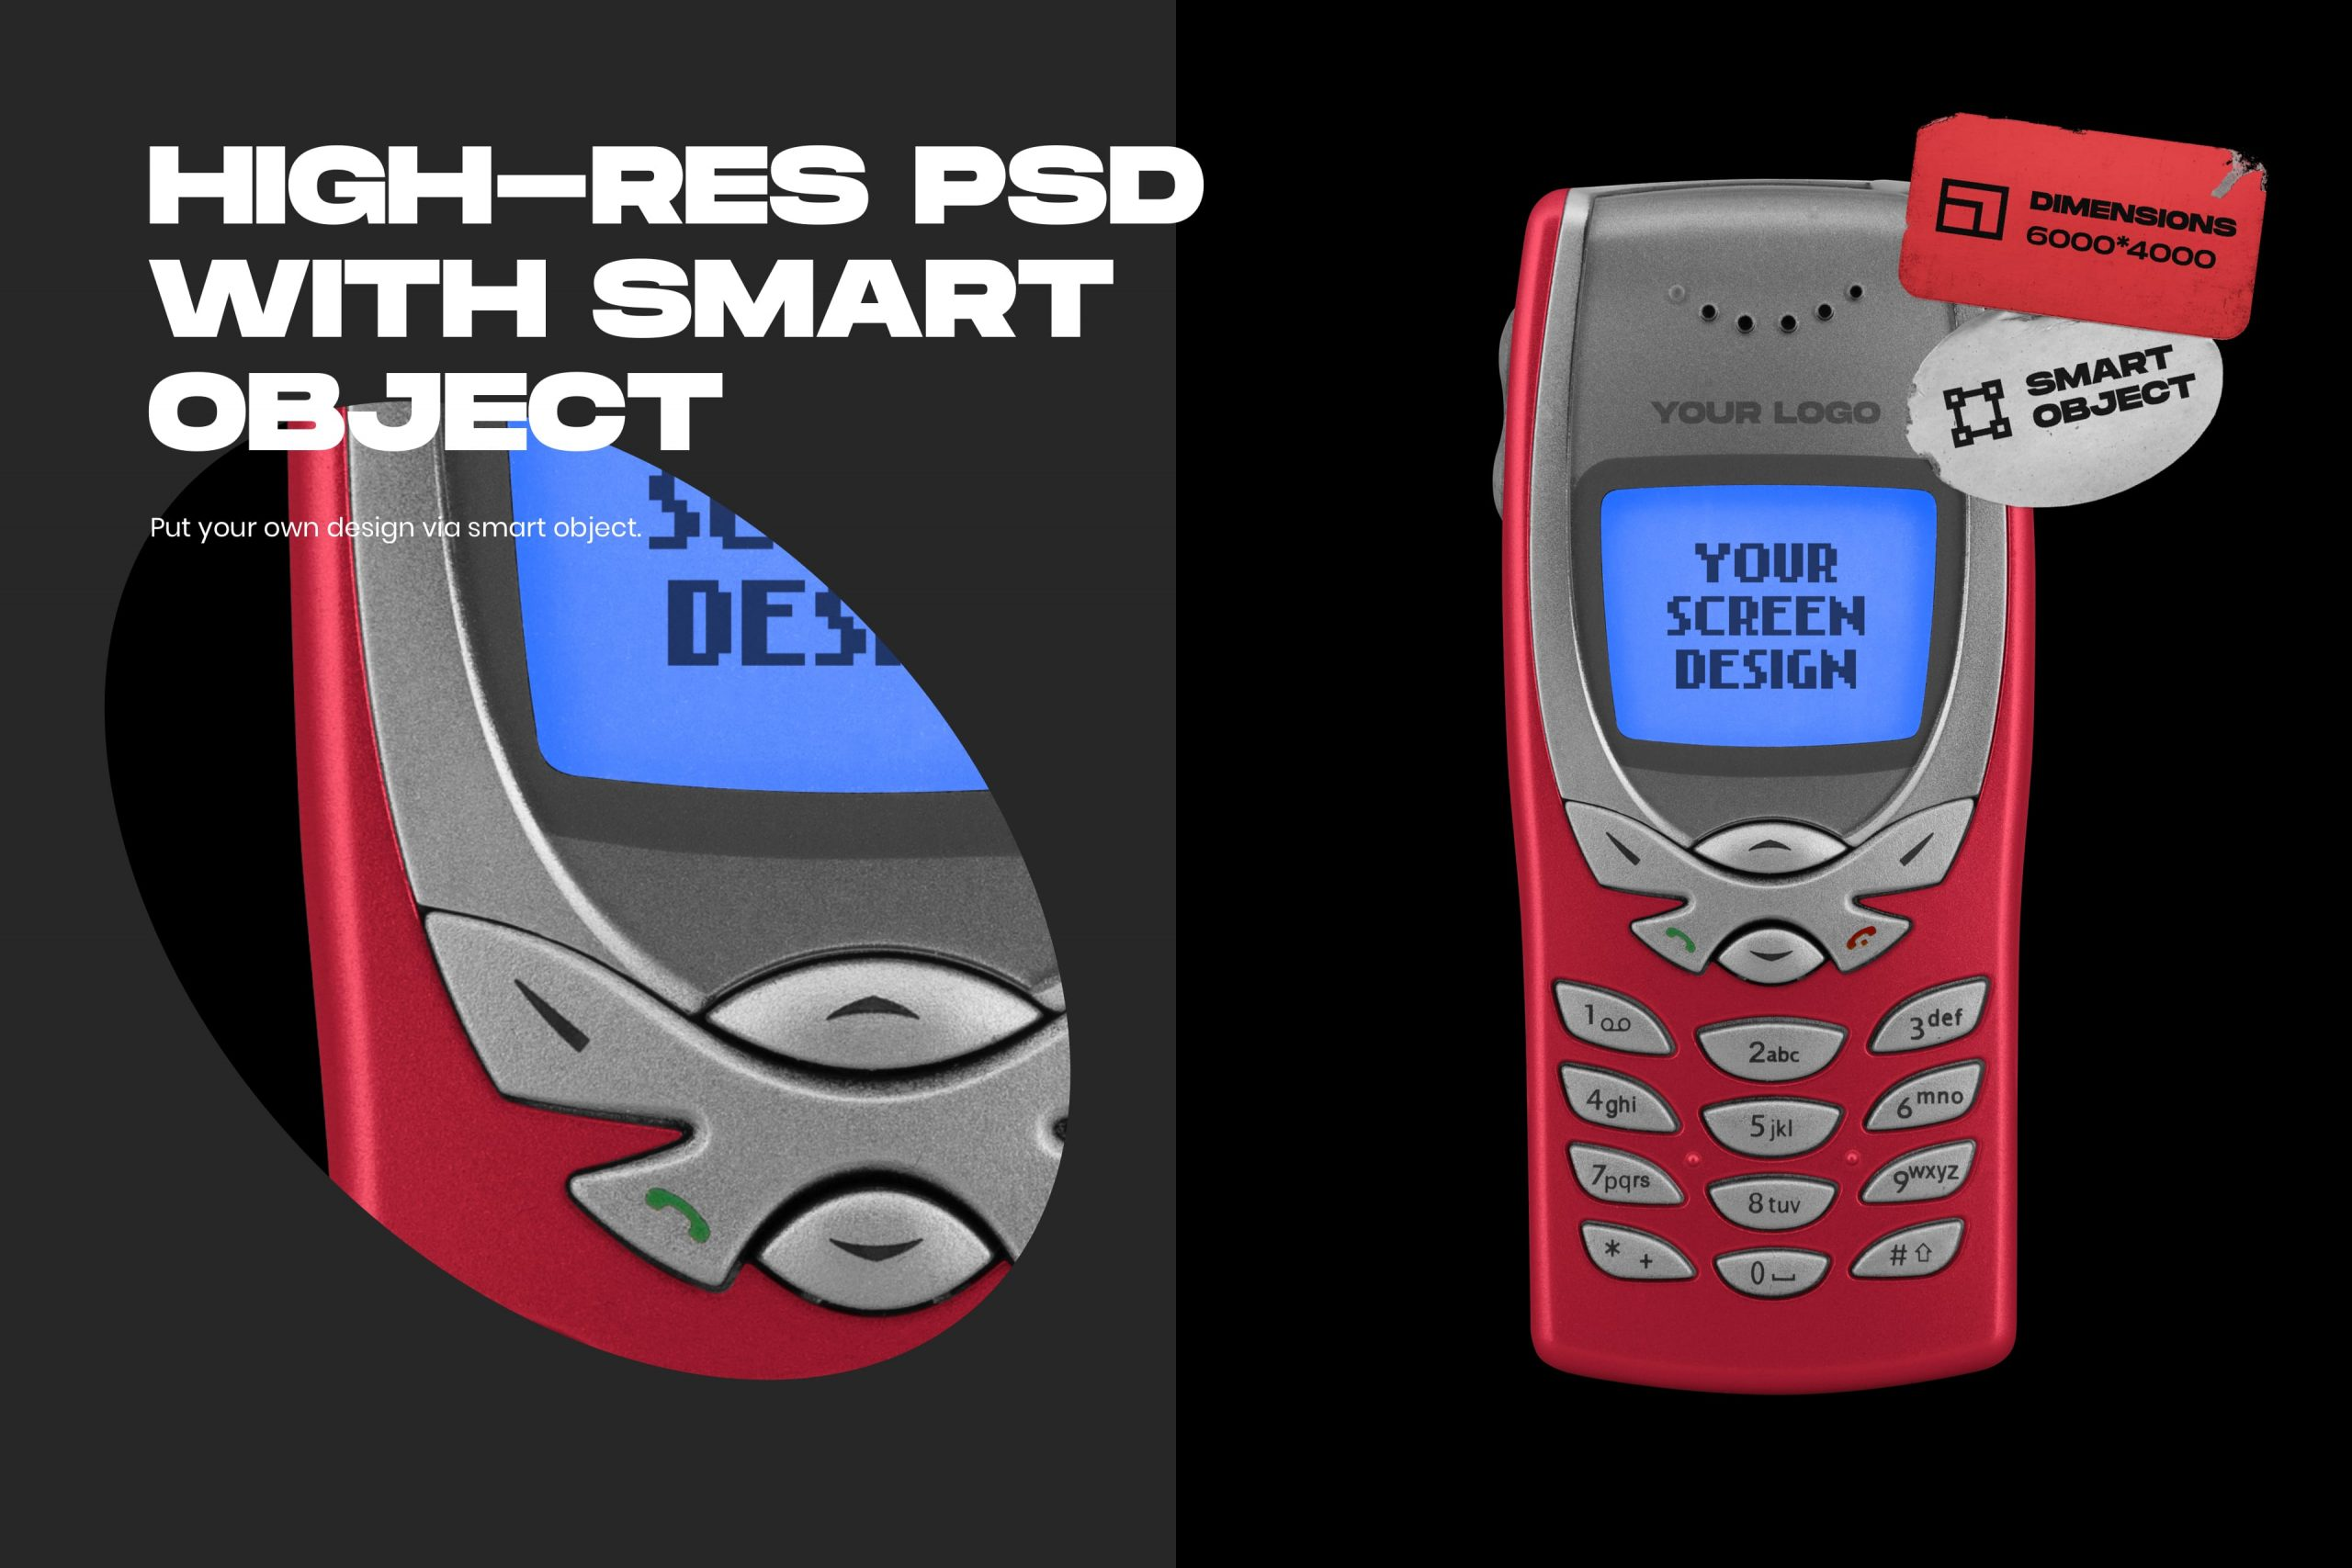 Retro Phone Mockup - High-res PSD with Smart Object